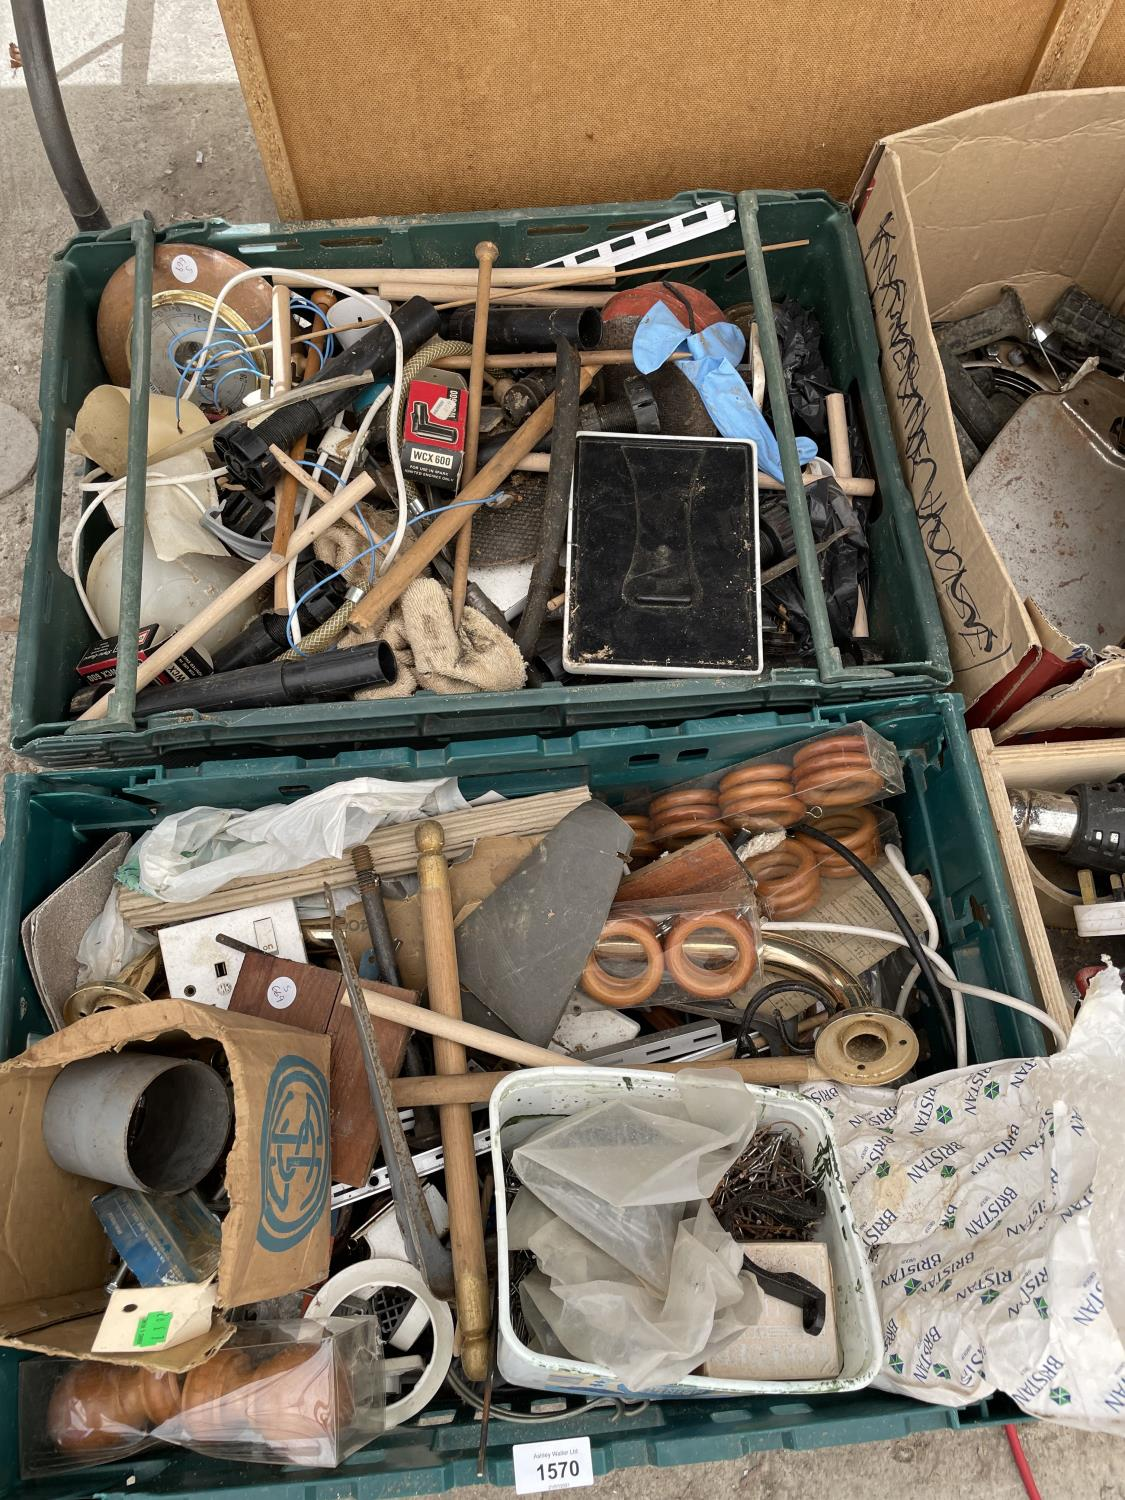 AN ASSORTMENT OF HARDWARE AND TOOLS TO INCLUDE A JIGSAW, HEAT GUN AND NAILS ETC - Image 3 of 6